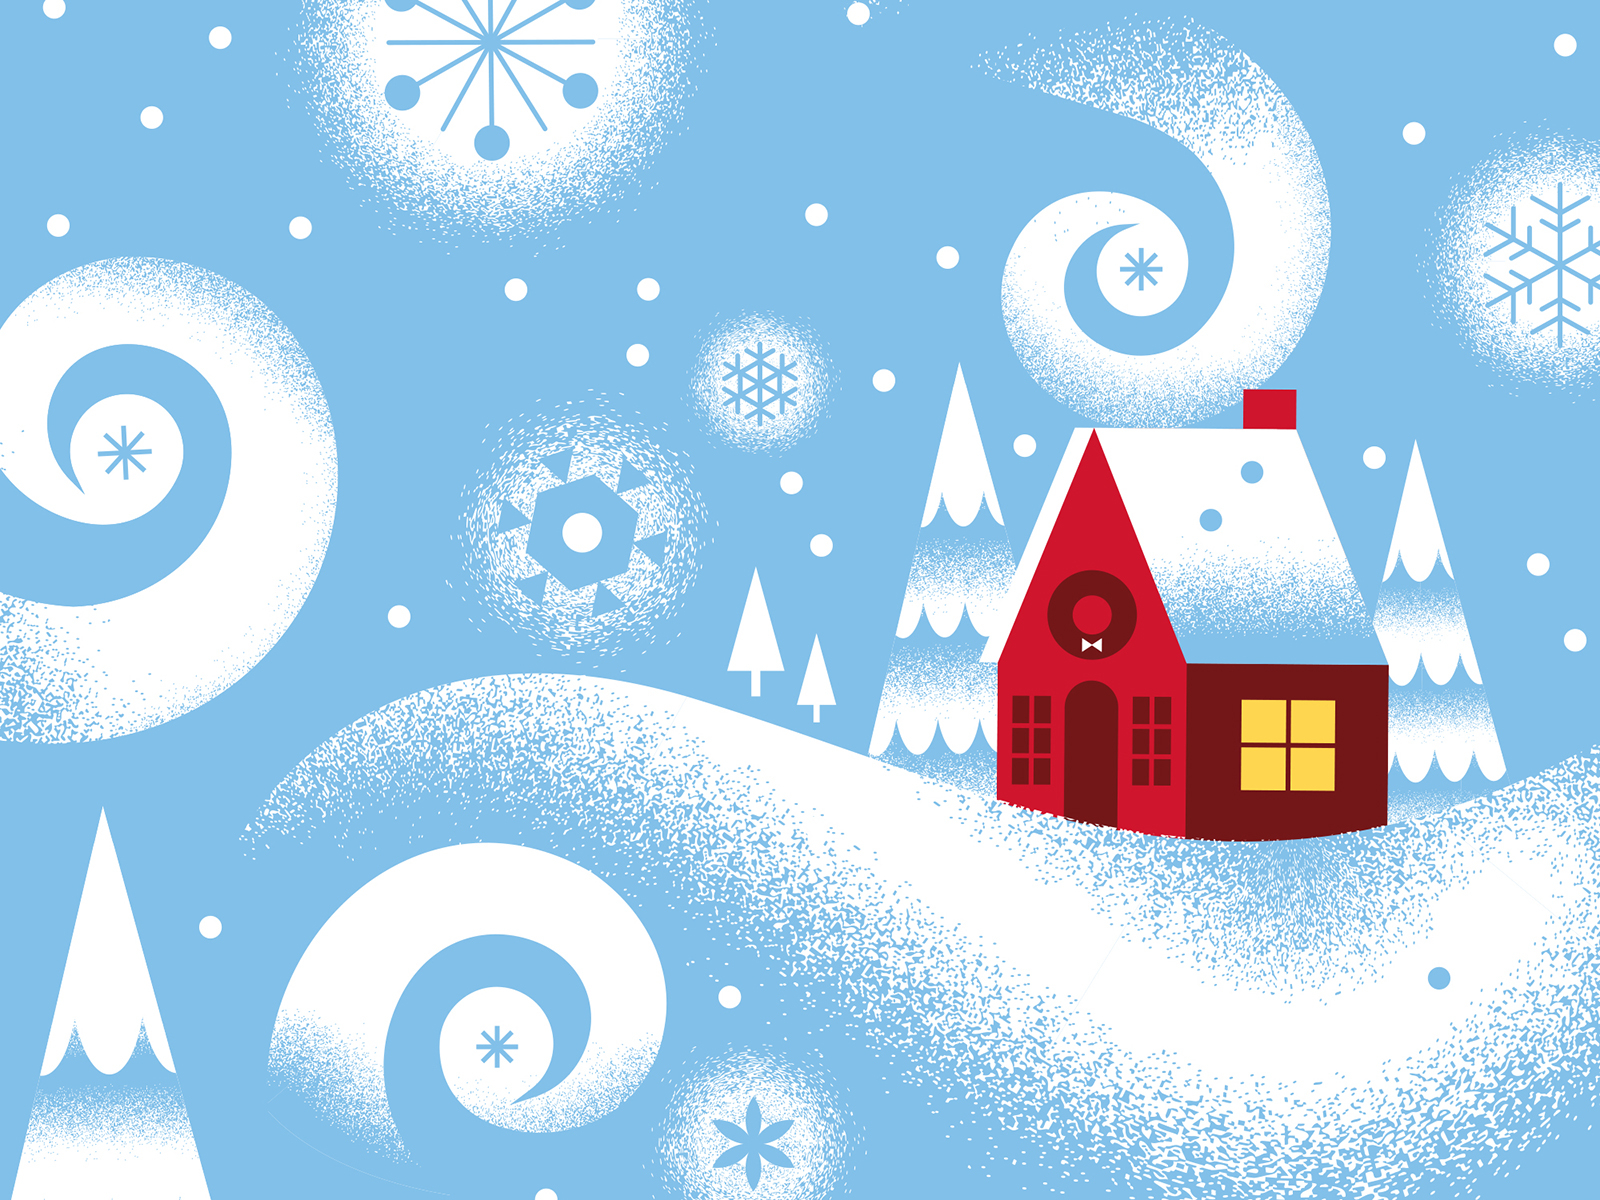 winter house illustration